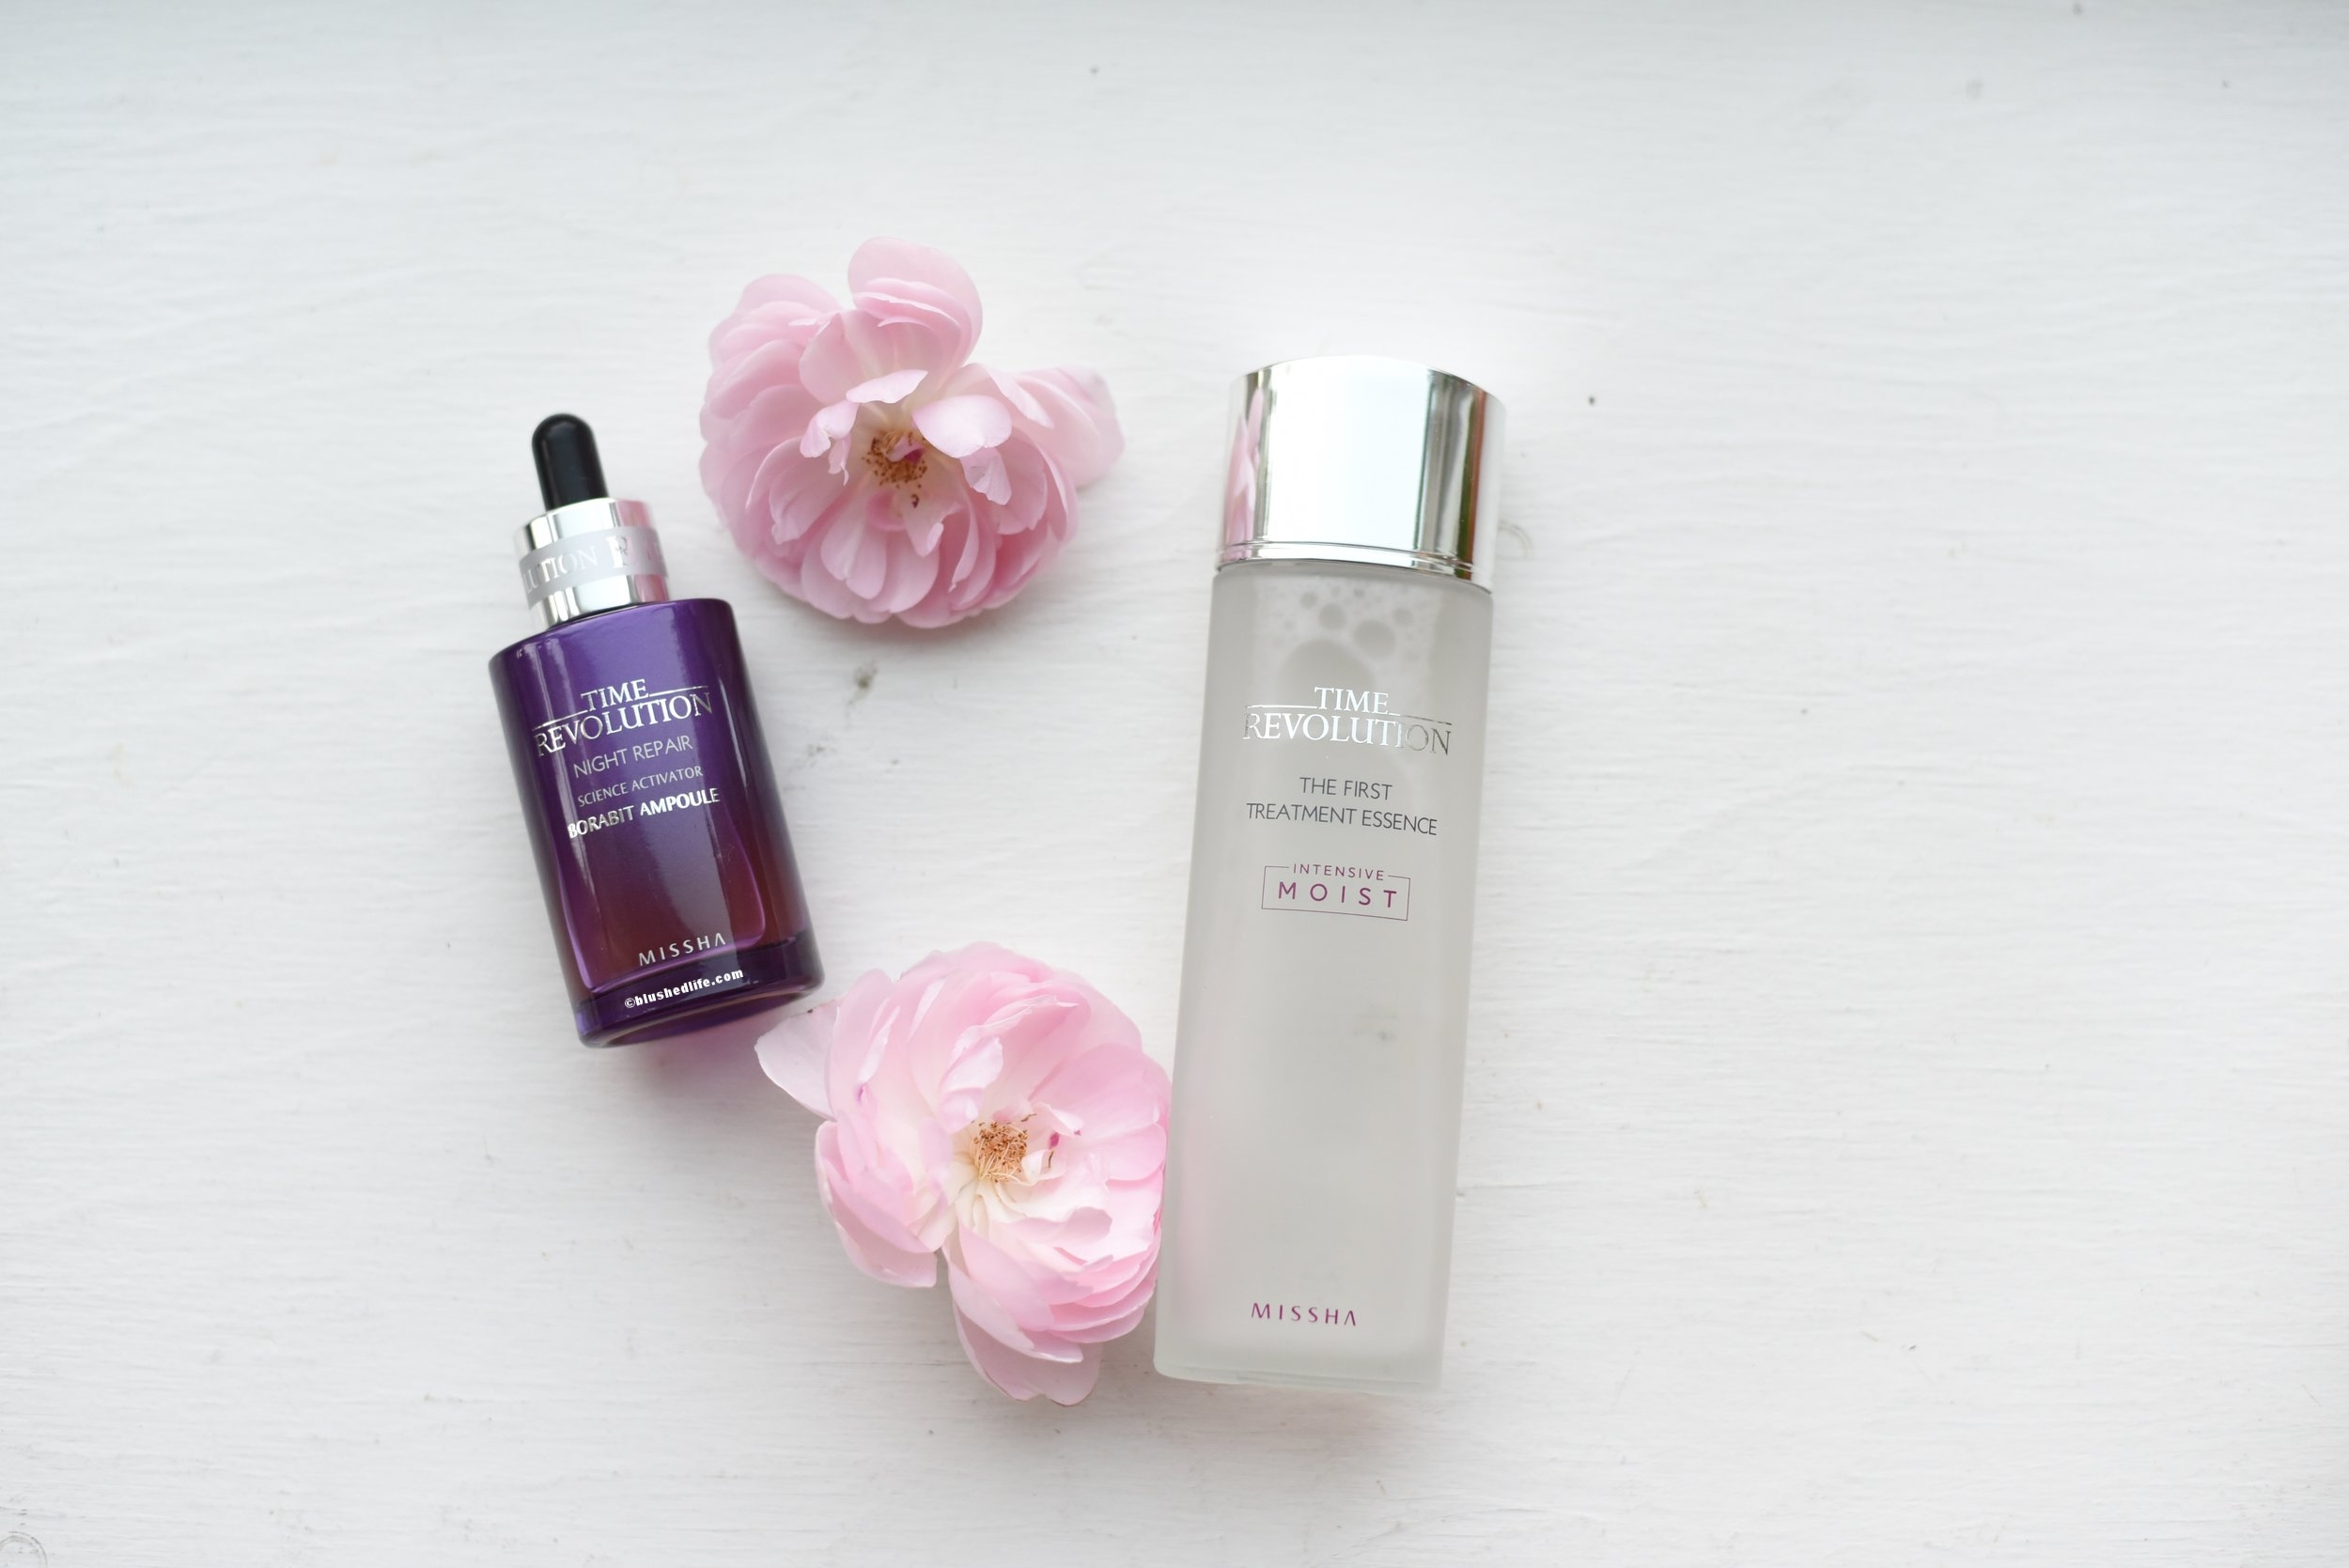 Missha Time Revolution Night Repair Borabit Ampoule ReviewDSC_8948.jpg